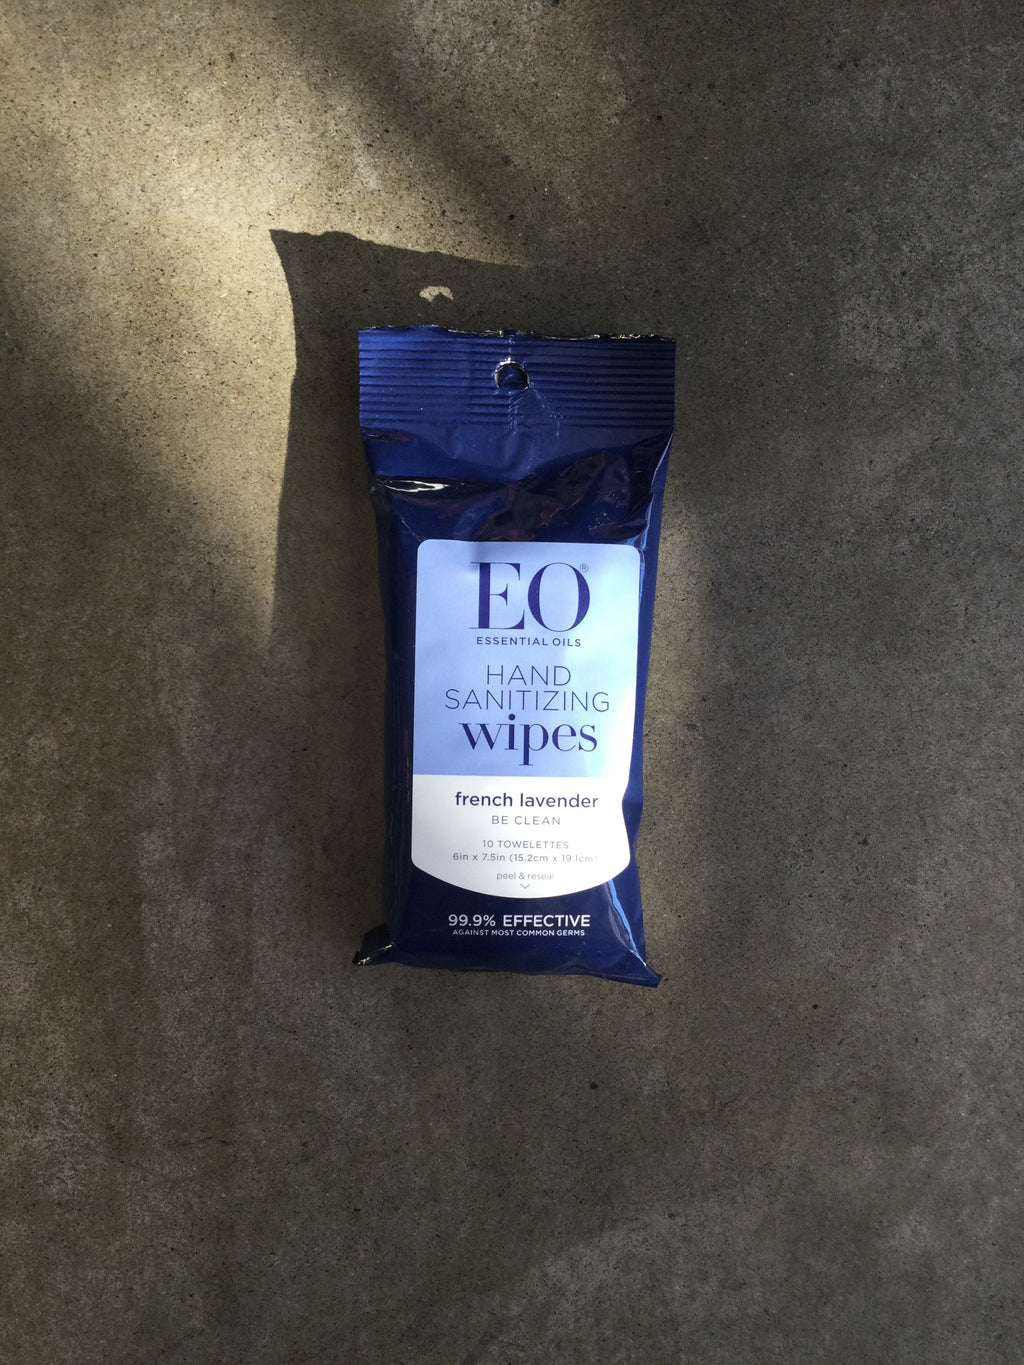 EO - Hand Sanitizing Wipes French Lavender Pouch